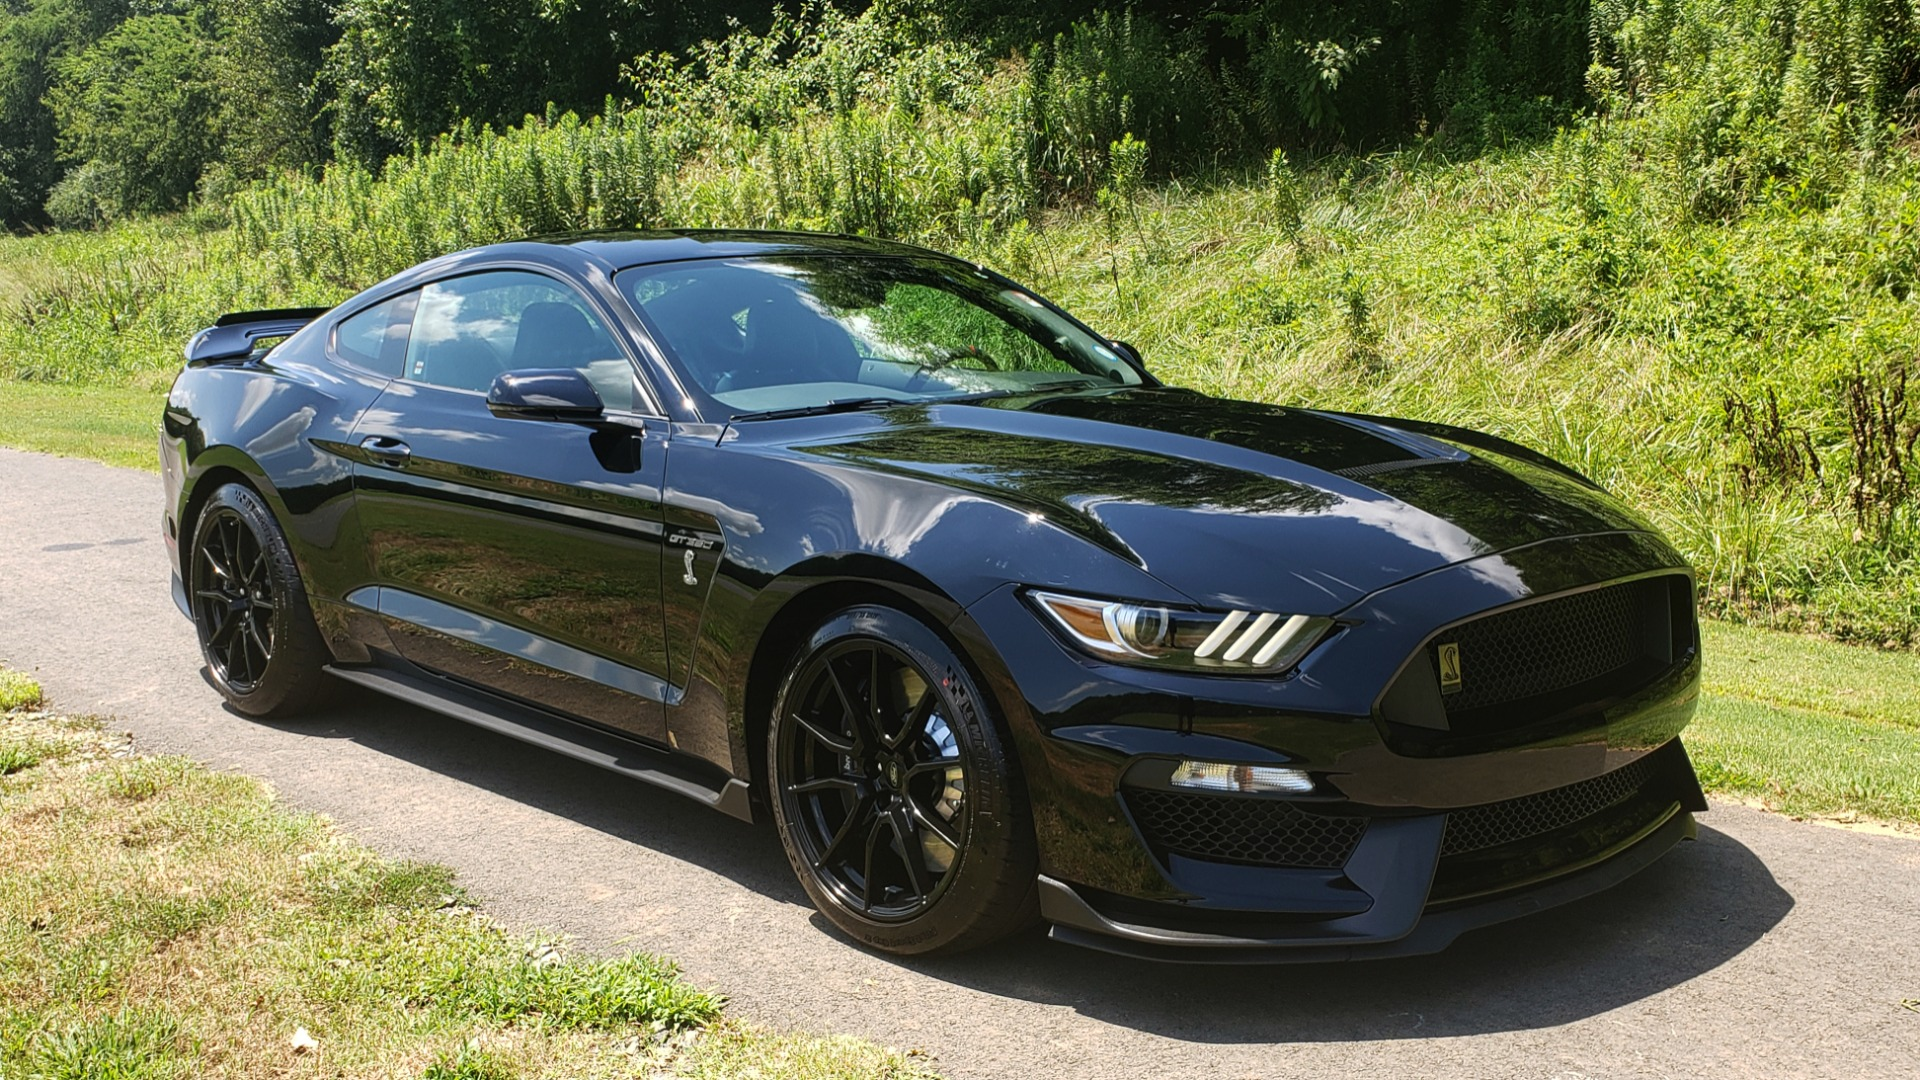 Used 2019 Ford MUSTANG SHELBY GT350 COUPE / TECH PKG / B&O SND / NAV / HNDLNG PKG / REARVIEW for sale Sold at Formula Imports in Charlotte NC 28227 4